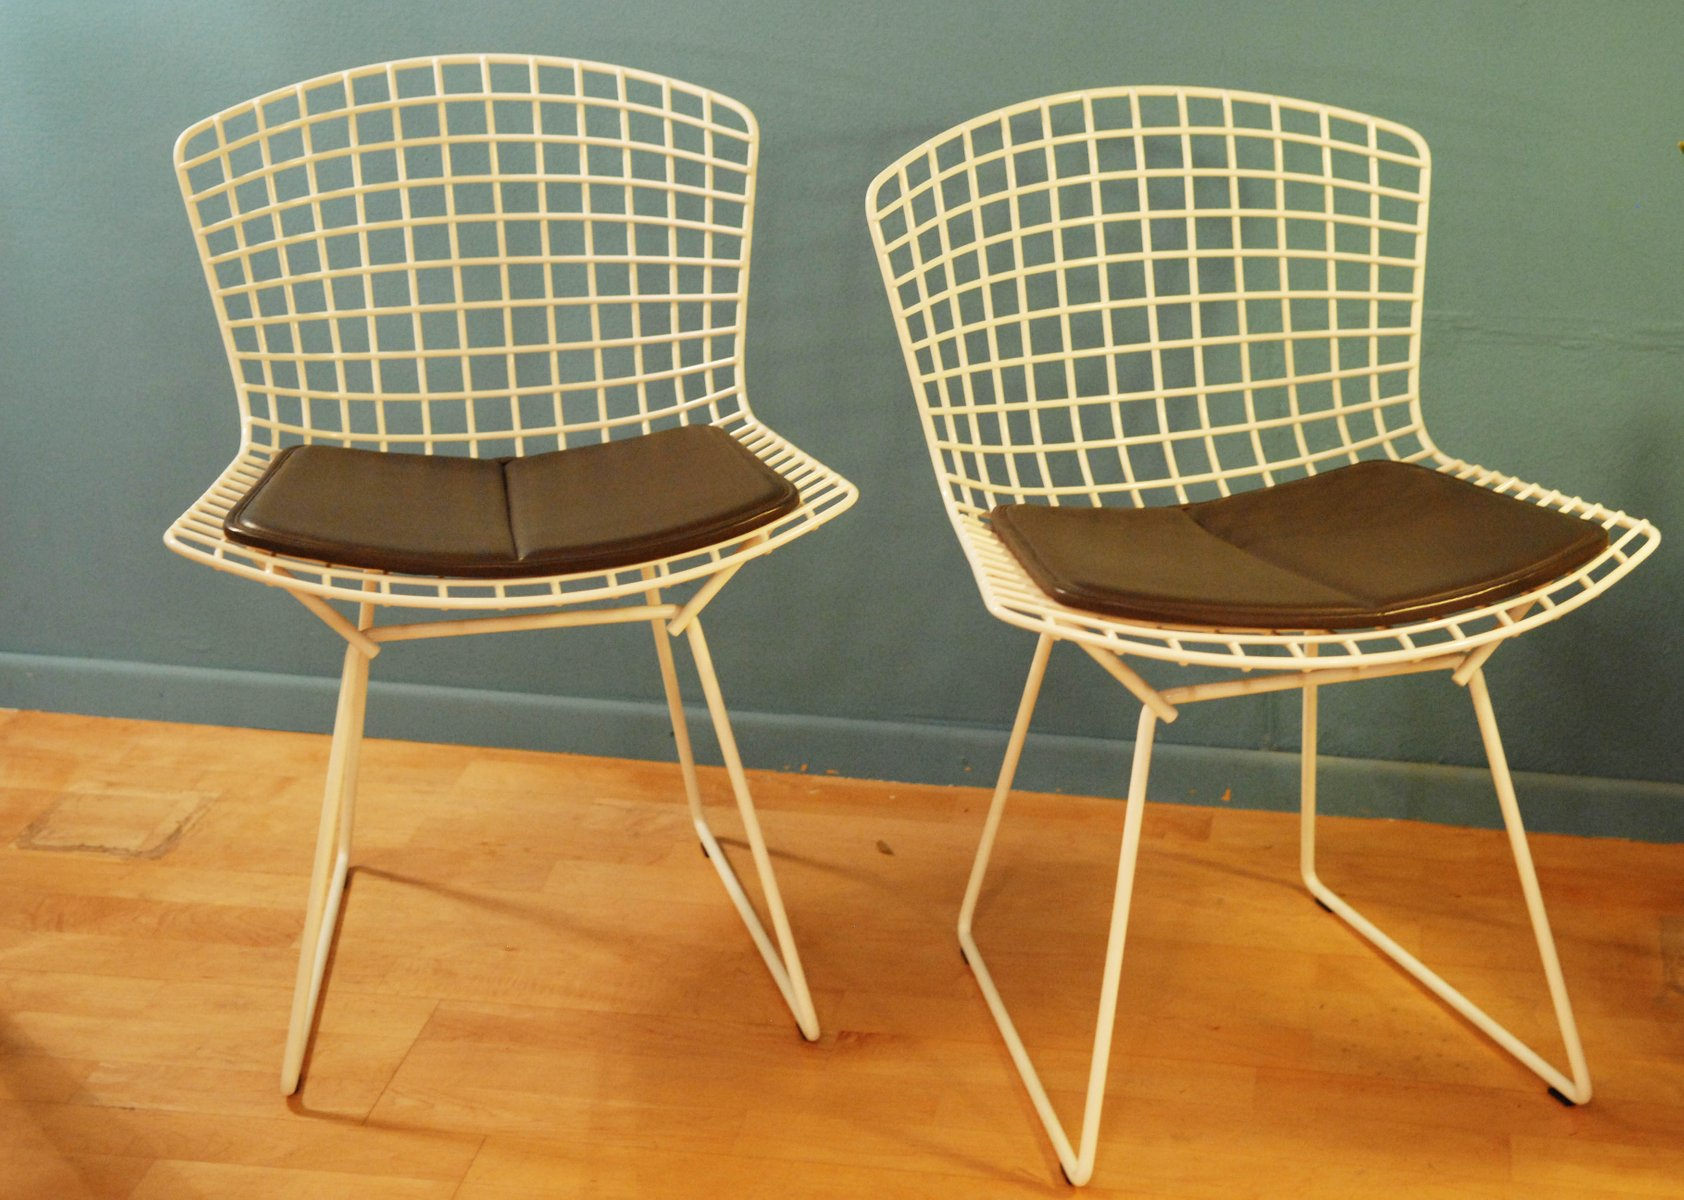 White wire chairs by harry bertoia for knoll inc set of 2 for sale at pamono - Knoll inc chairs ...